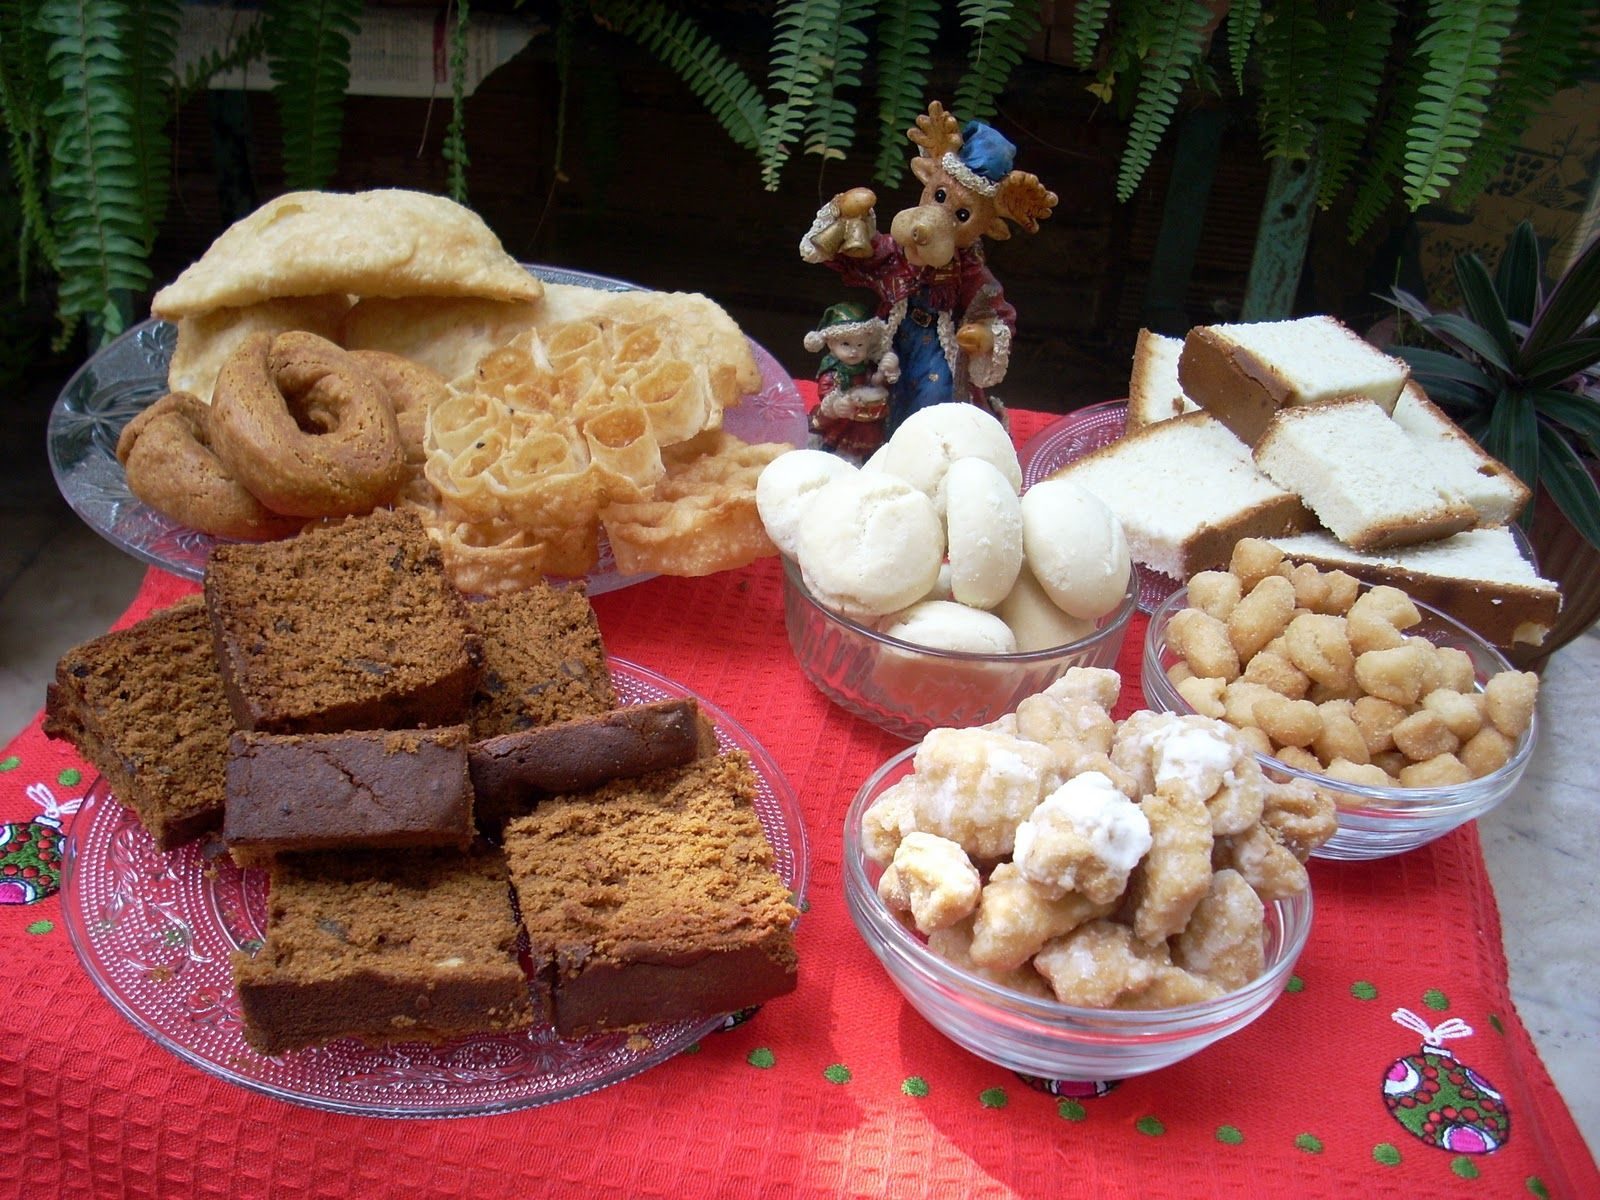 Christmas In India Food.Anglo Indian Food Christmas Sweets Snacks And Sweets